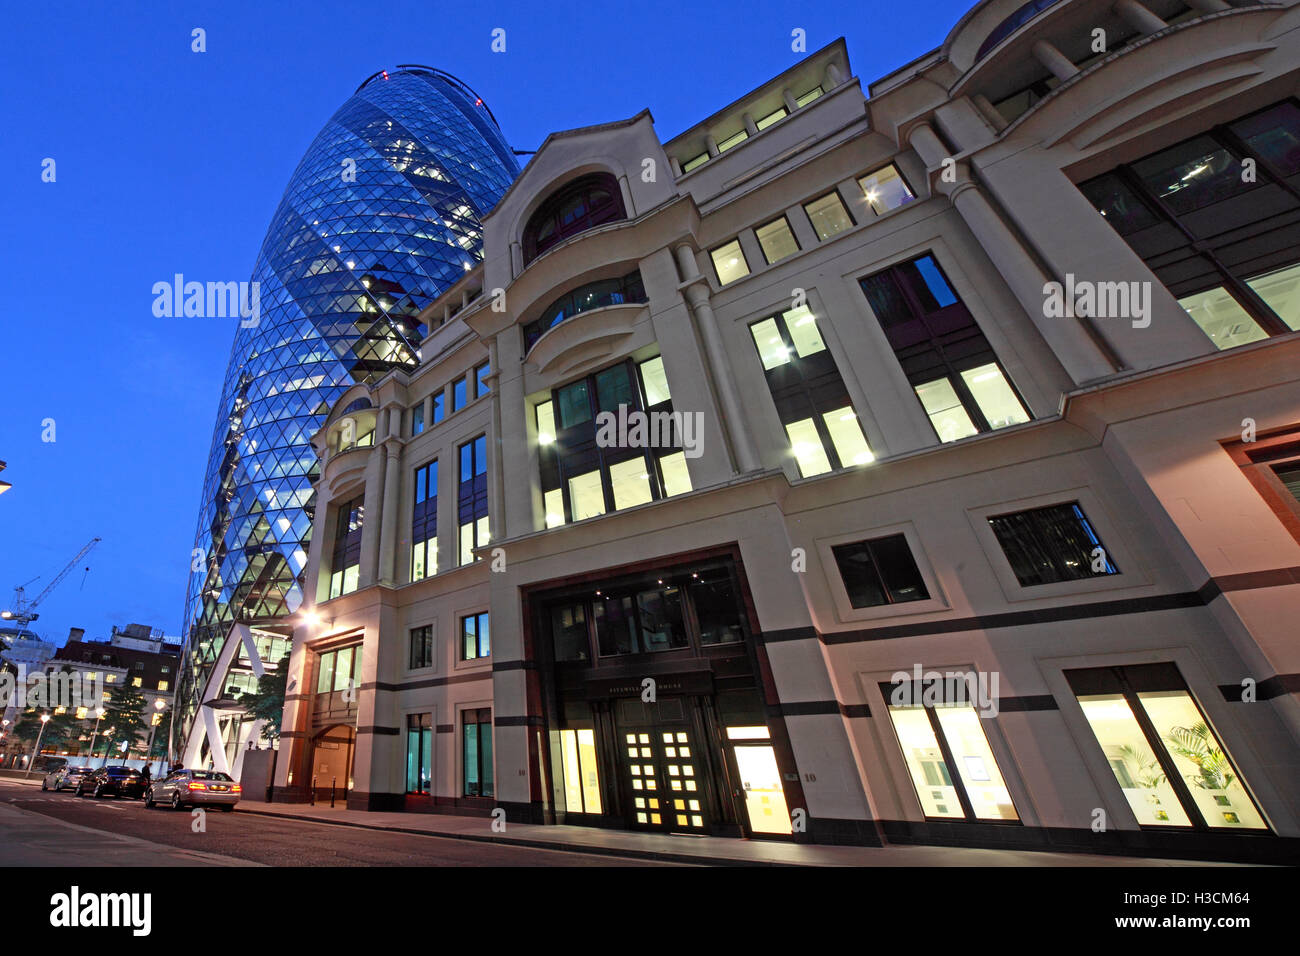 Financial heart of London, City of London, South East England, Uk at dusk - Stock Image